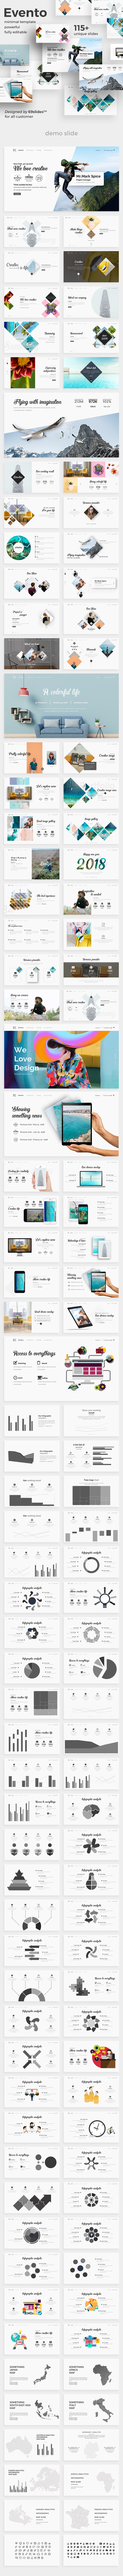 Evento Creative Google Slide Template - Google Slides Presentation Templates